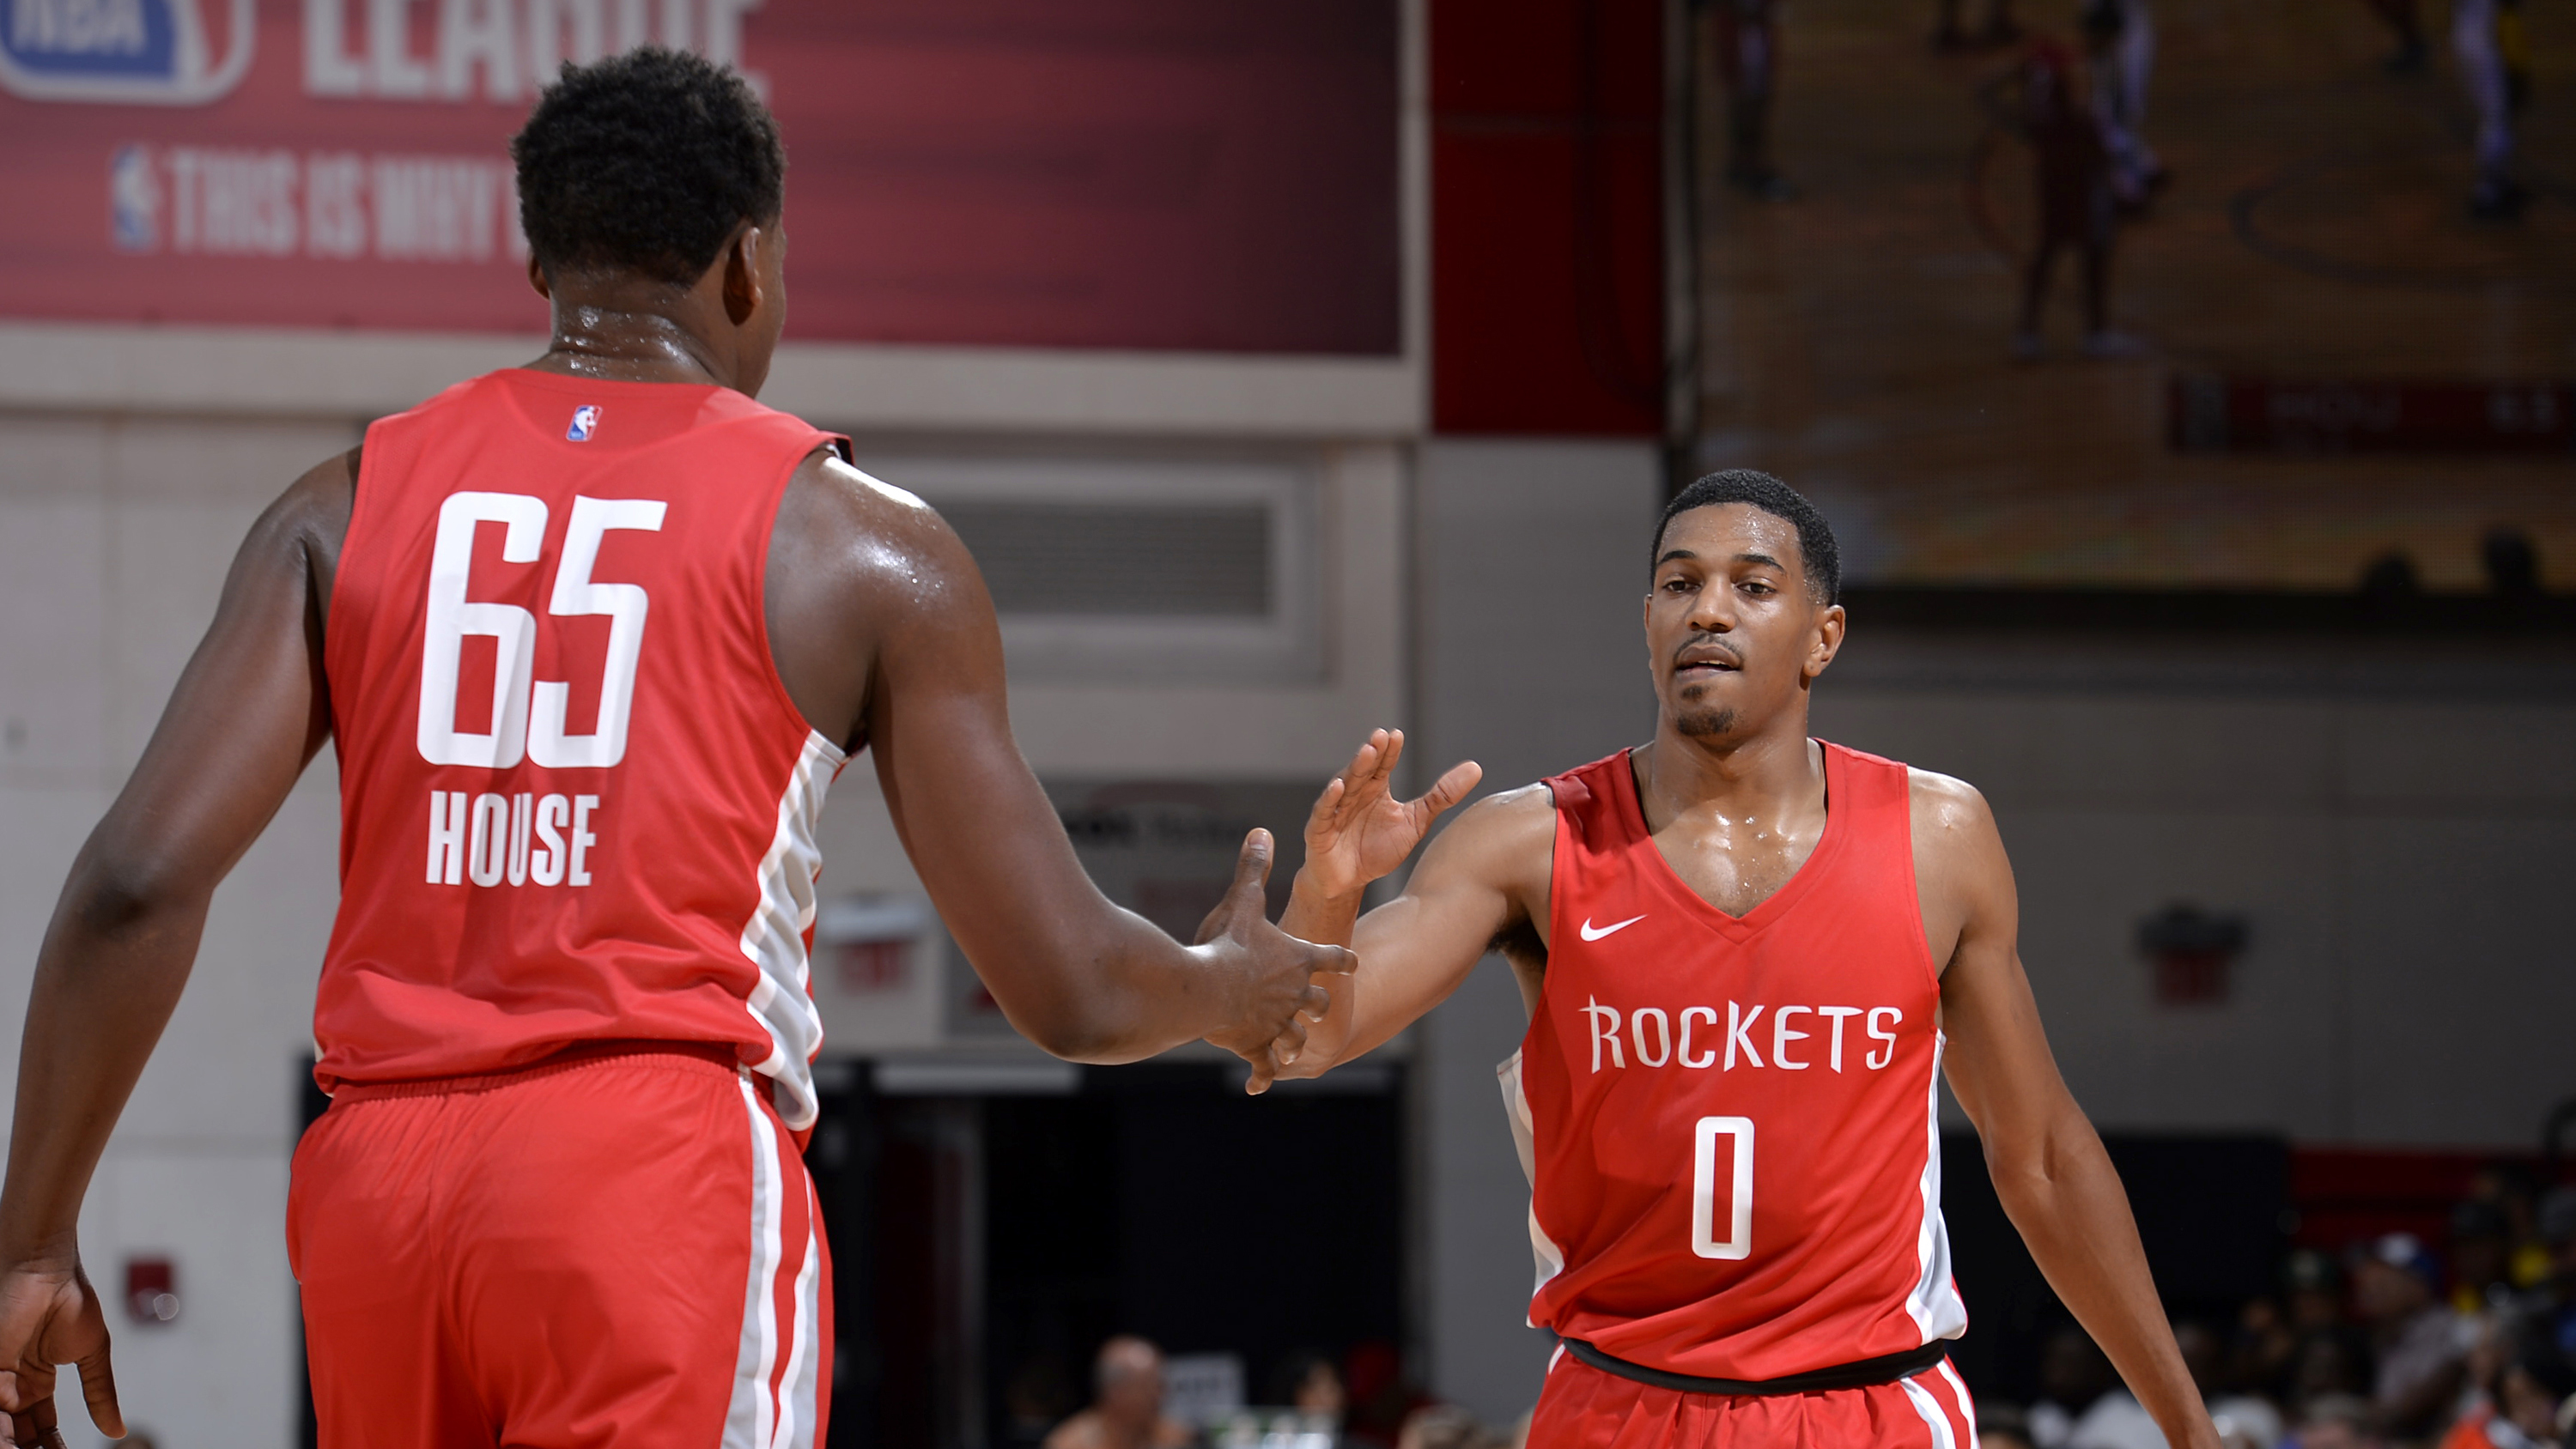 GAME RECAP: Rockets 92, Pacers 89